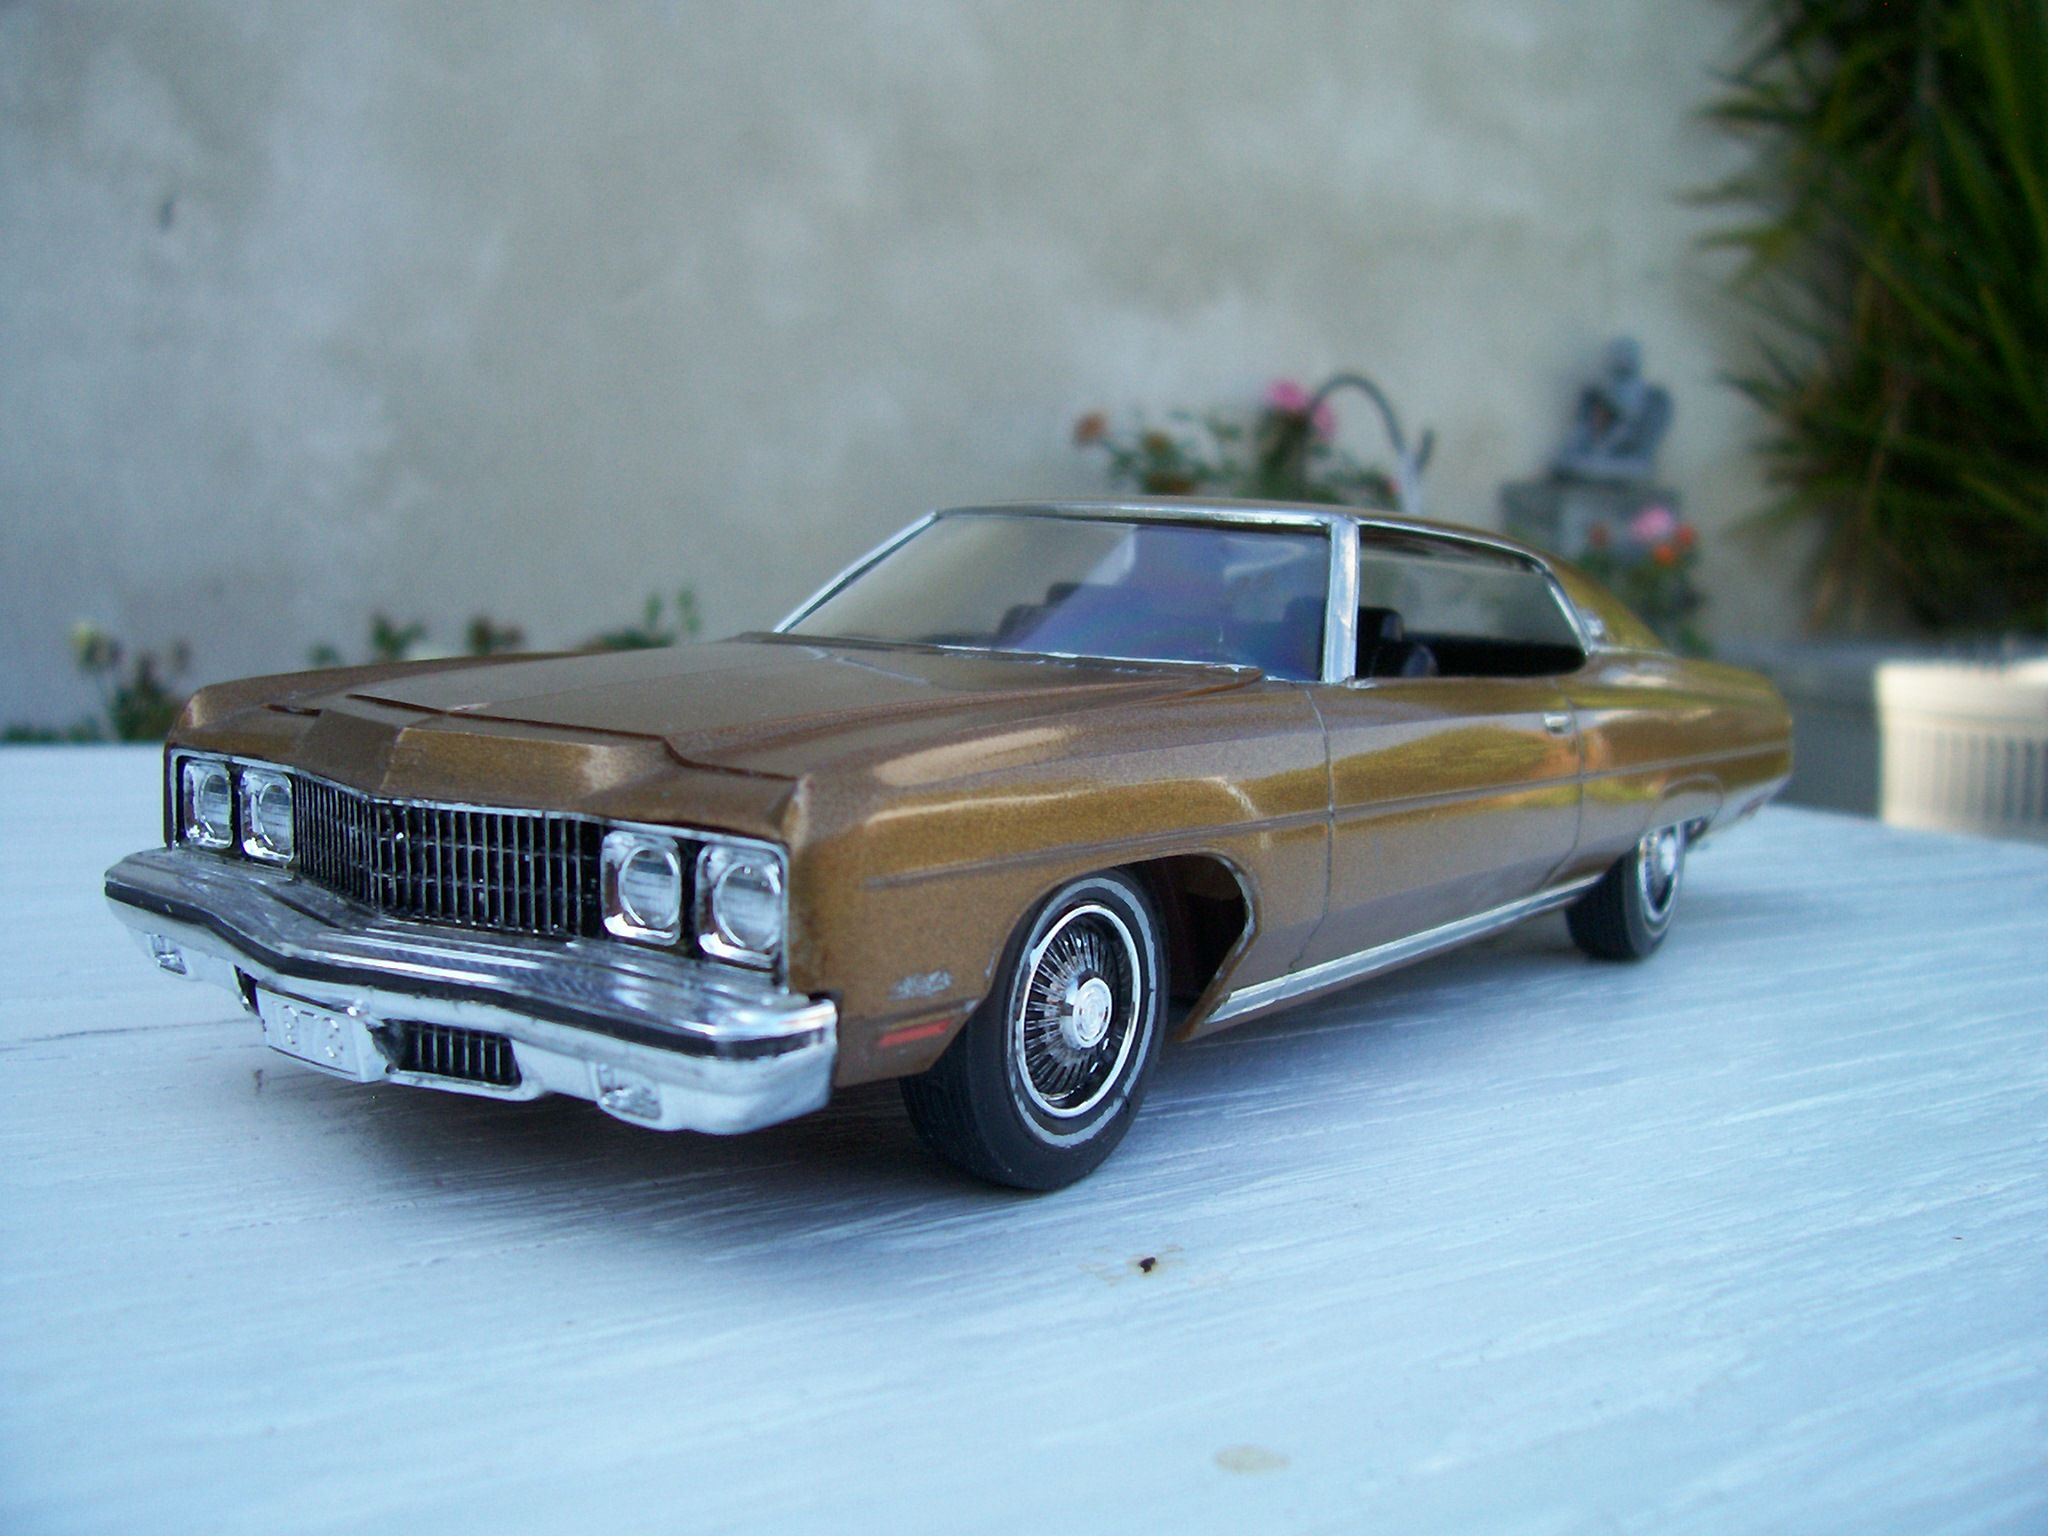 1973 Chevy Caprice 1/25 scale model car Maintenance/restoration of ...